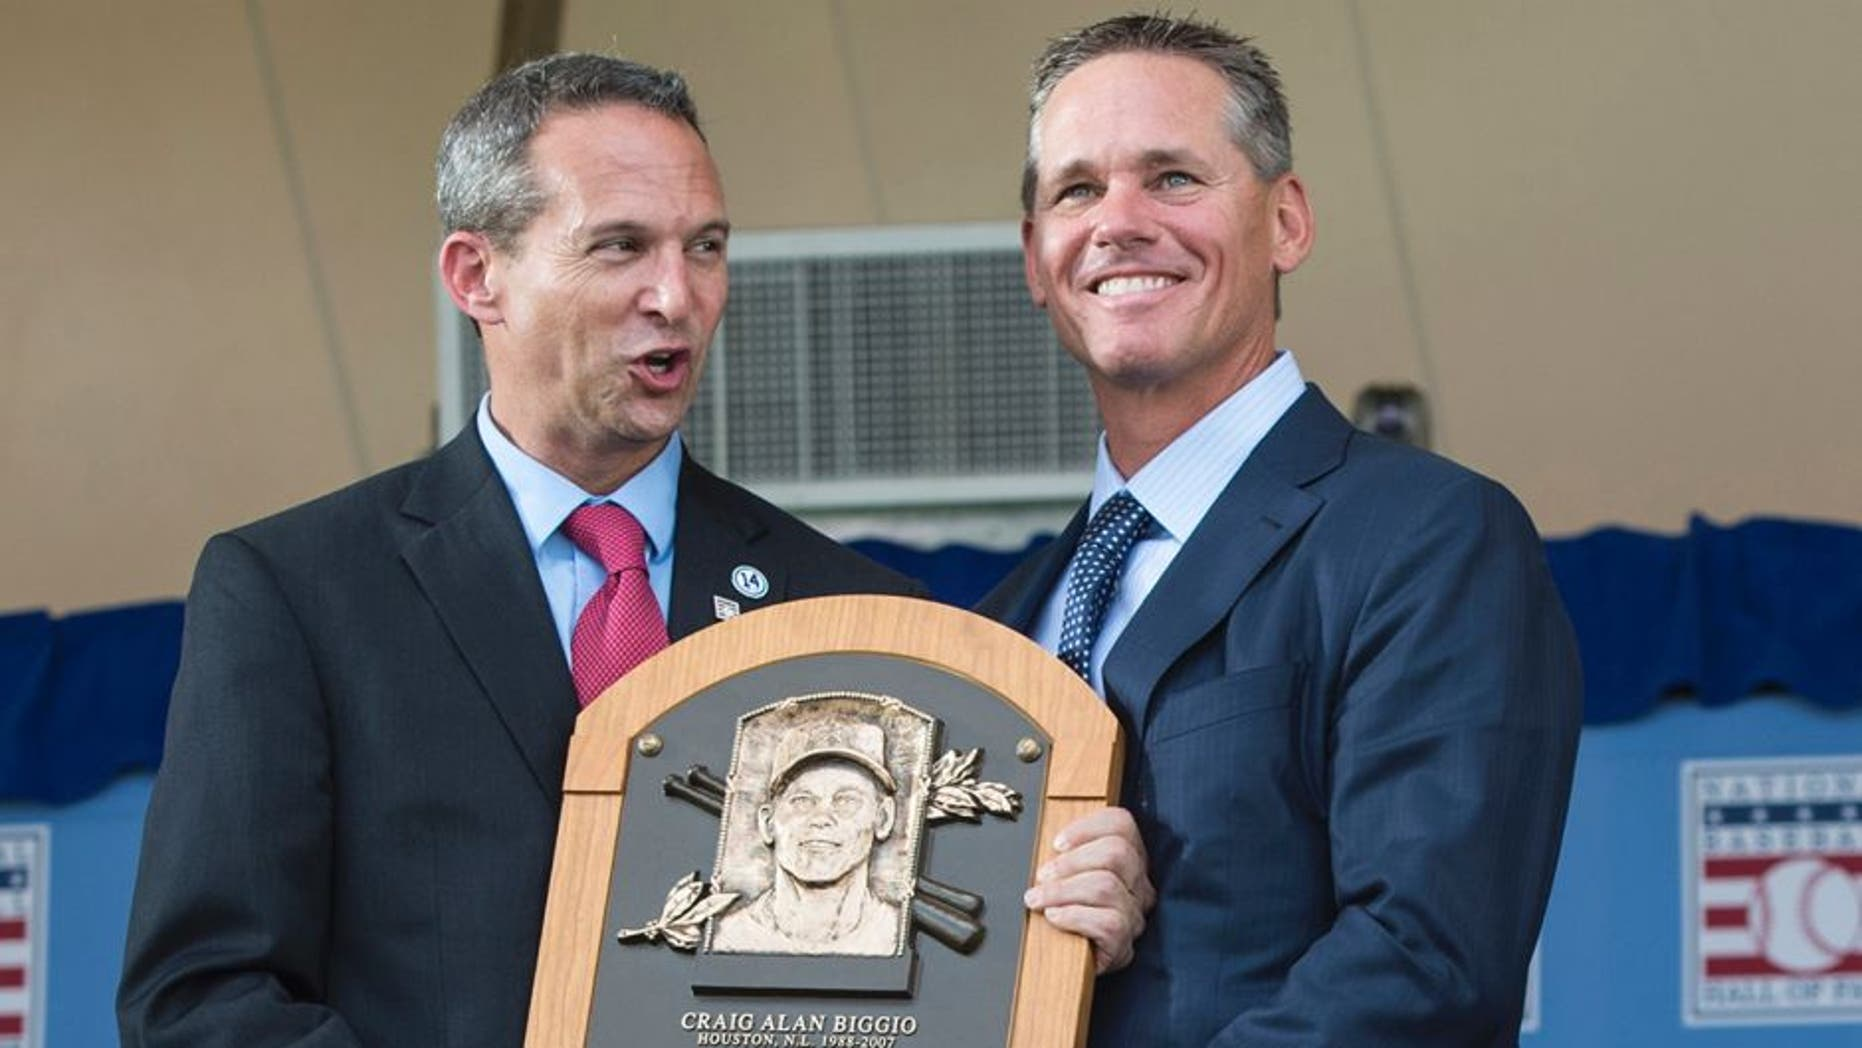 Jul 26, 2015; Cooperstown, NY, USA; Hall of Fame President Jeff Idelson (L) presents Hall of Fame Inductee Craig Biggio (R) with his Hall of Fame Plague during the Hall of Fame Induction Ceremonies at Clark Sports Center. Mandatory Credit: Gregory J. Fisher-USA TODAY Sports